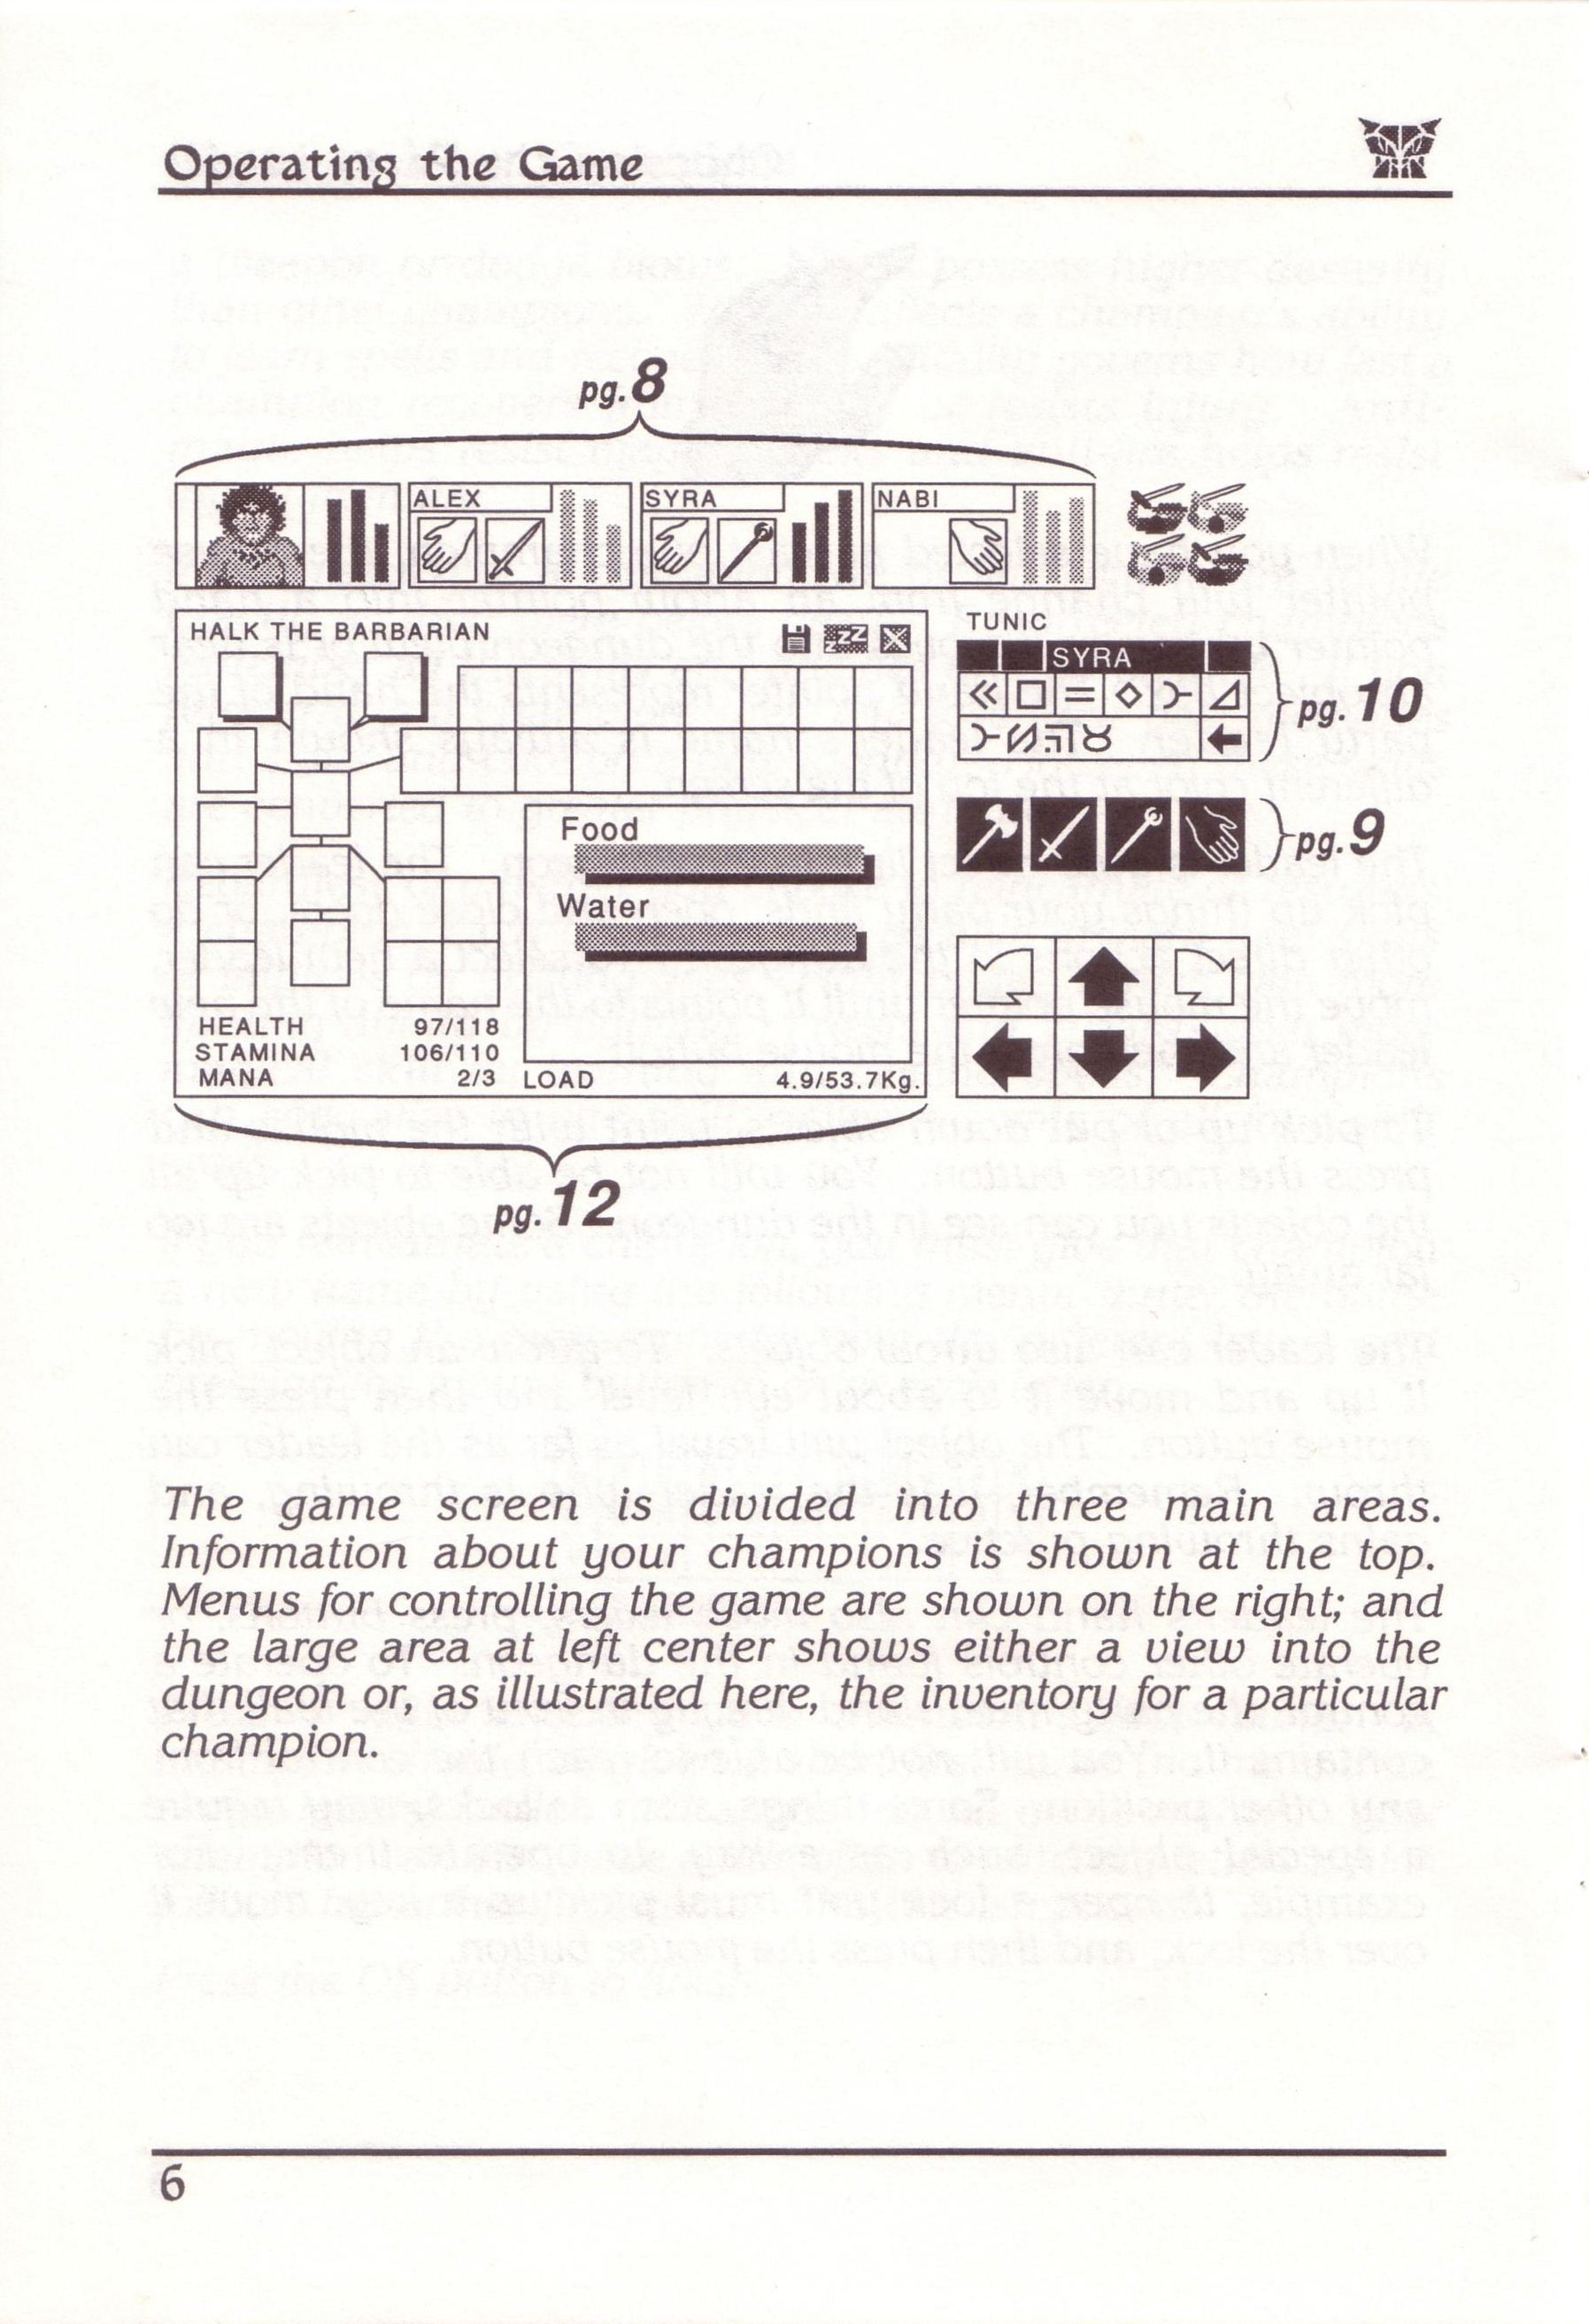 Dungeon Master for PC with FTL Sound Adapter (US Release) - Manual Page 30